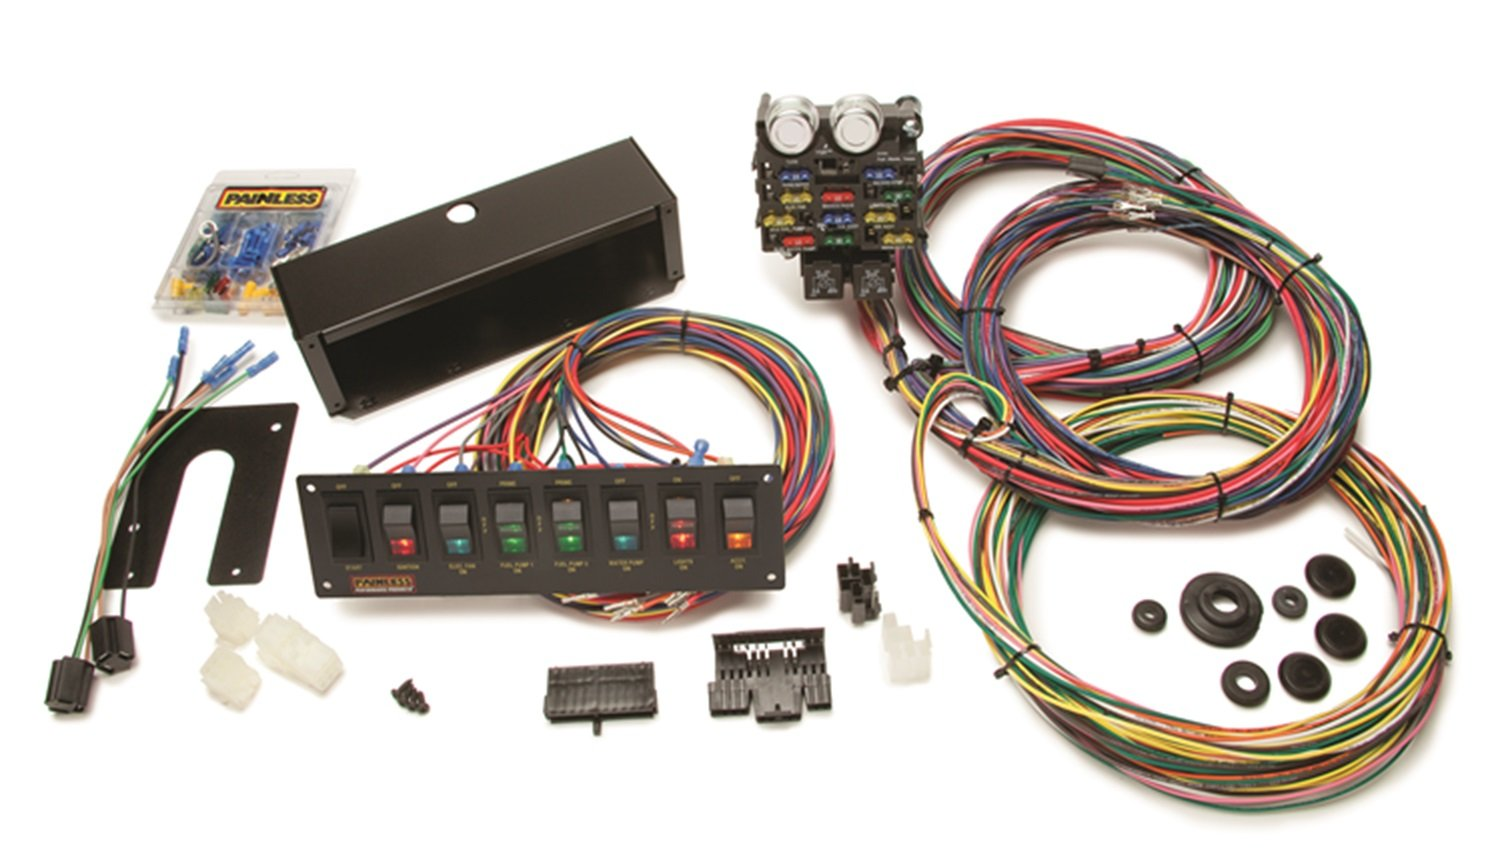 71BqRBAaHEL._SL1500_ amazon com painless 50003 12 circuit wiring harness with 8 switch painless wiring harness rebate at n-0.co